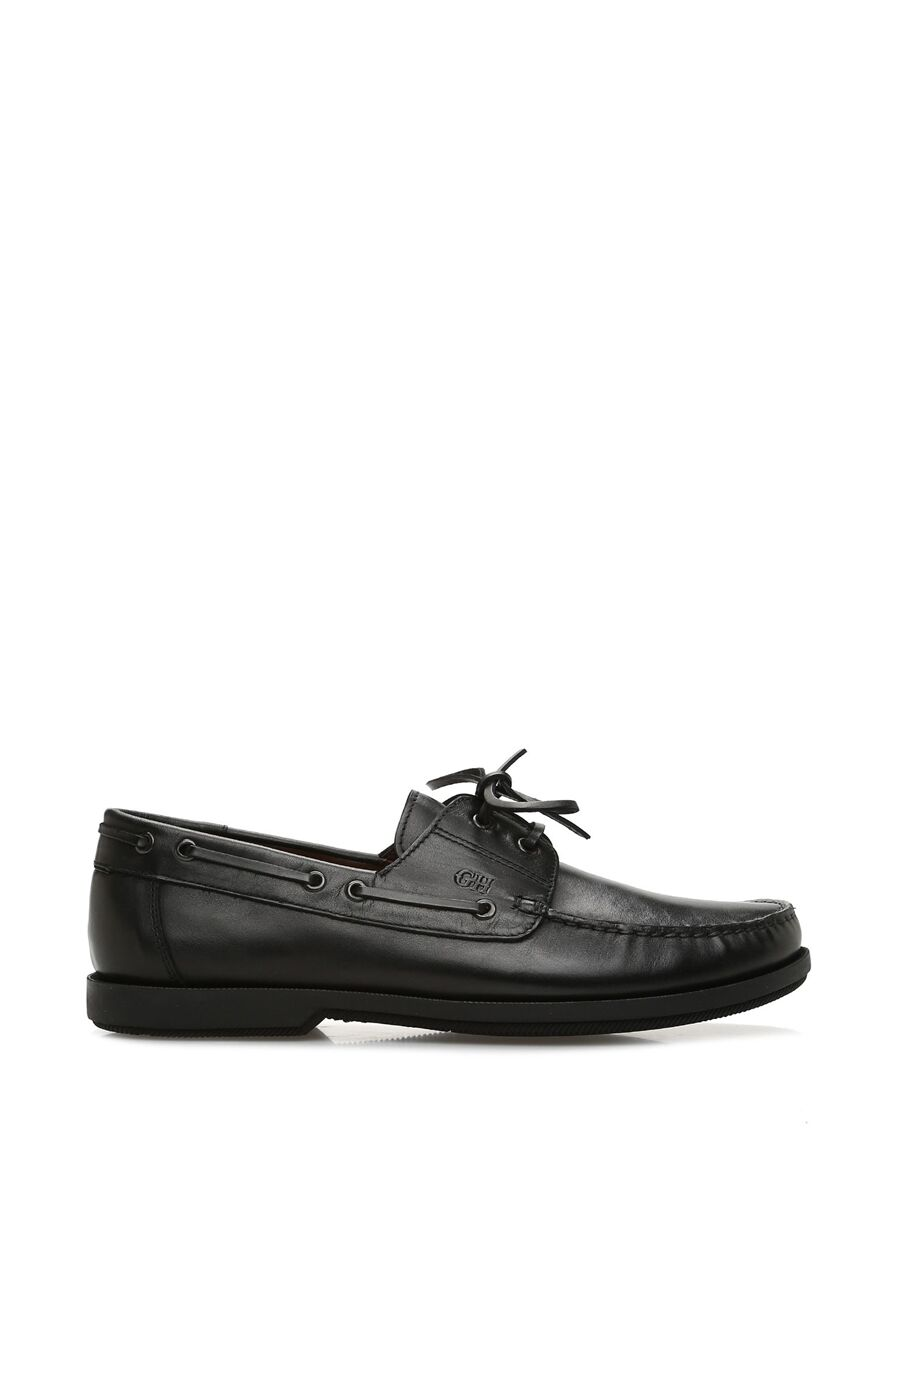 George Hogg Loafer – 597.0 TL